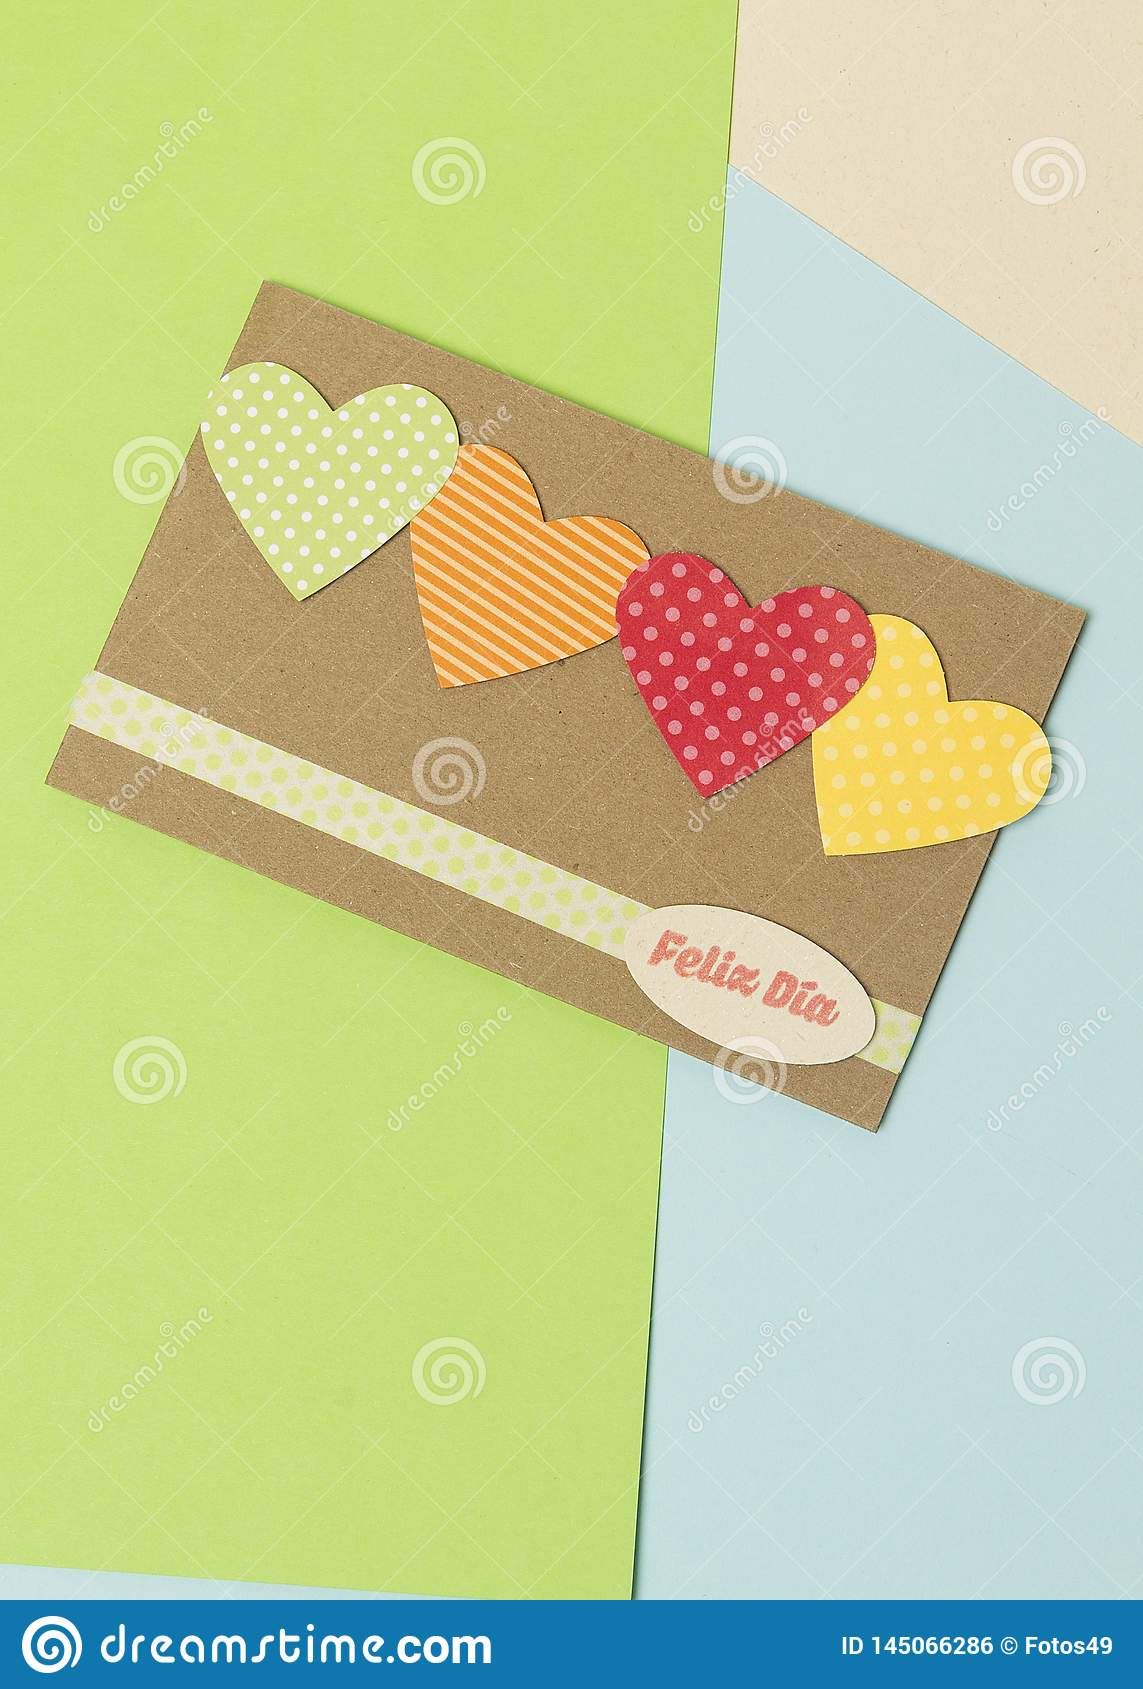 Paper card with hearts with happy day spanish phrase and blue and yellow green colors